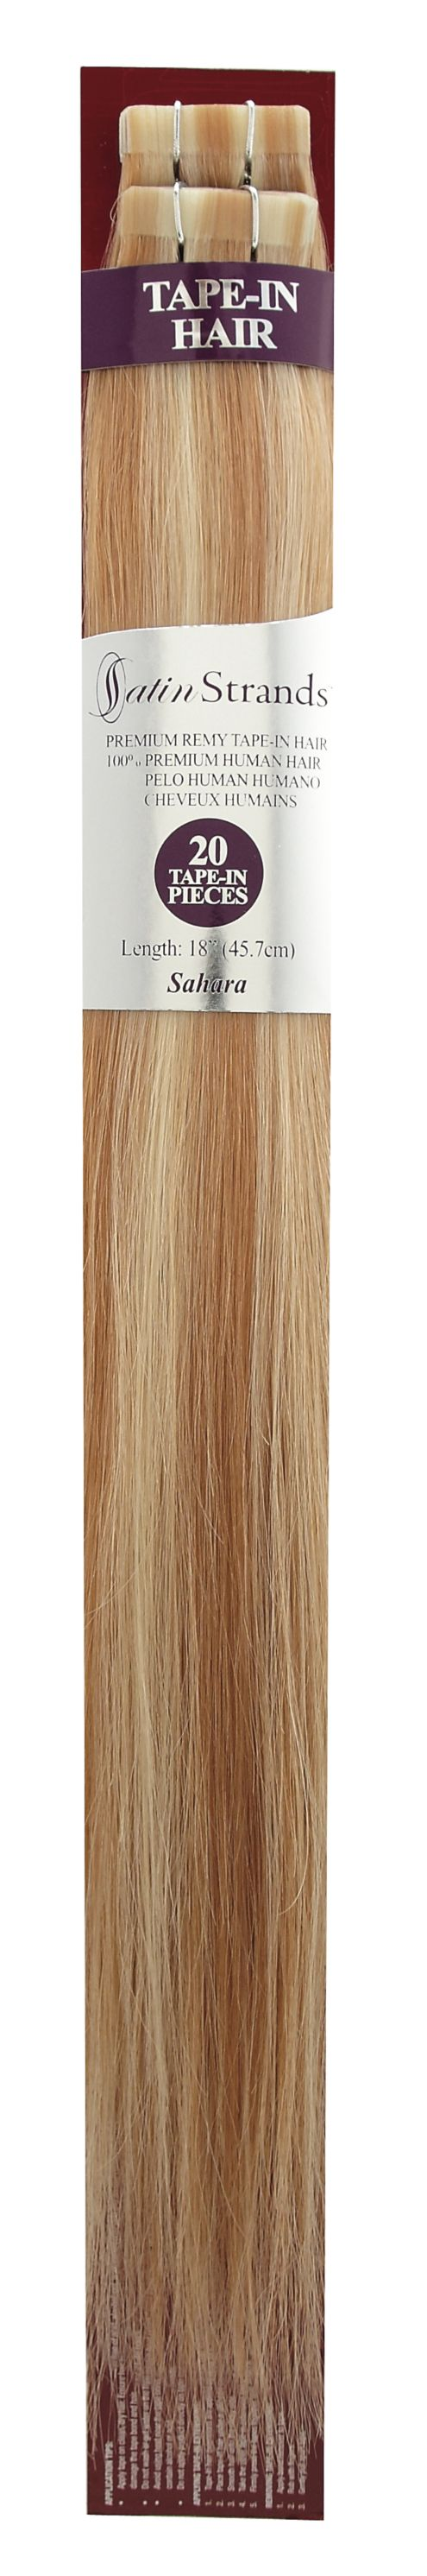 Extension Hair Satin Strand 64